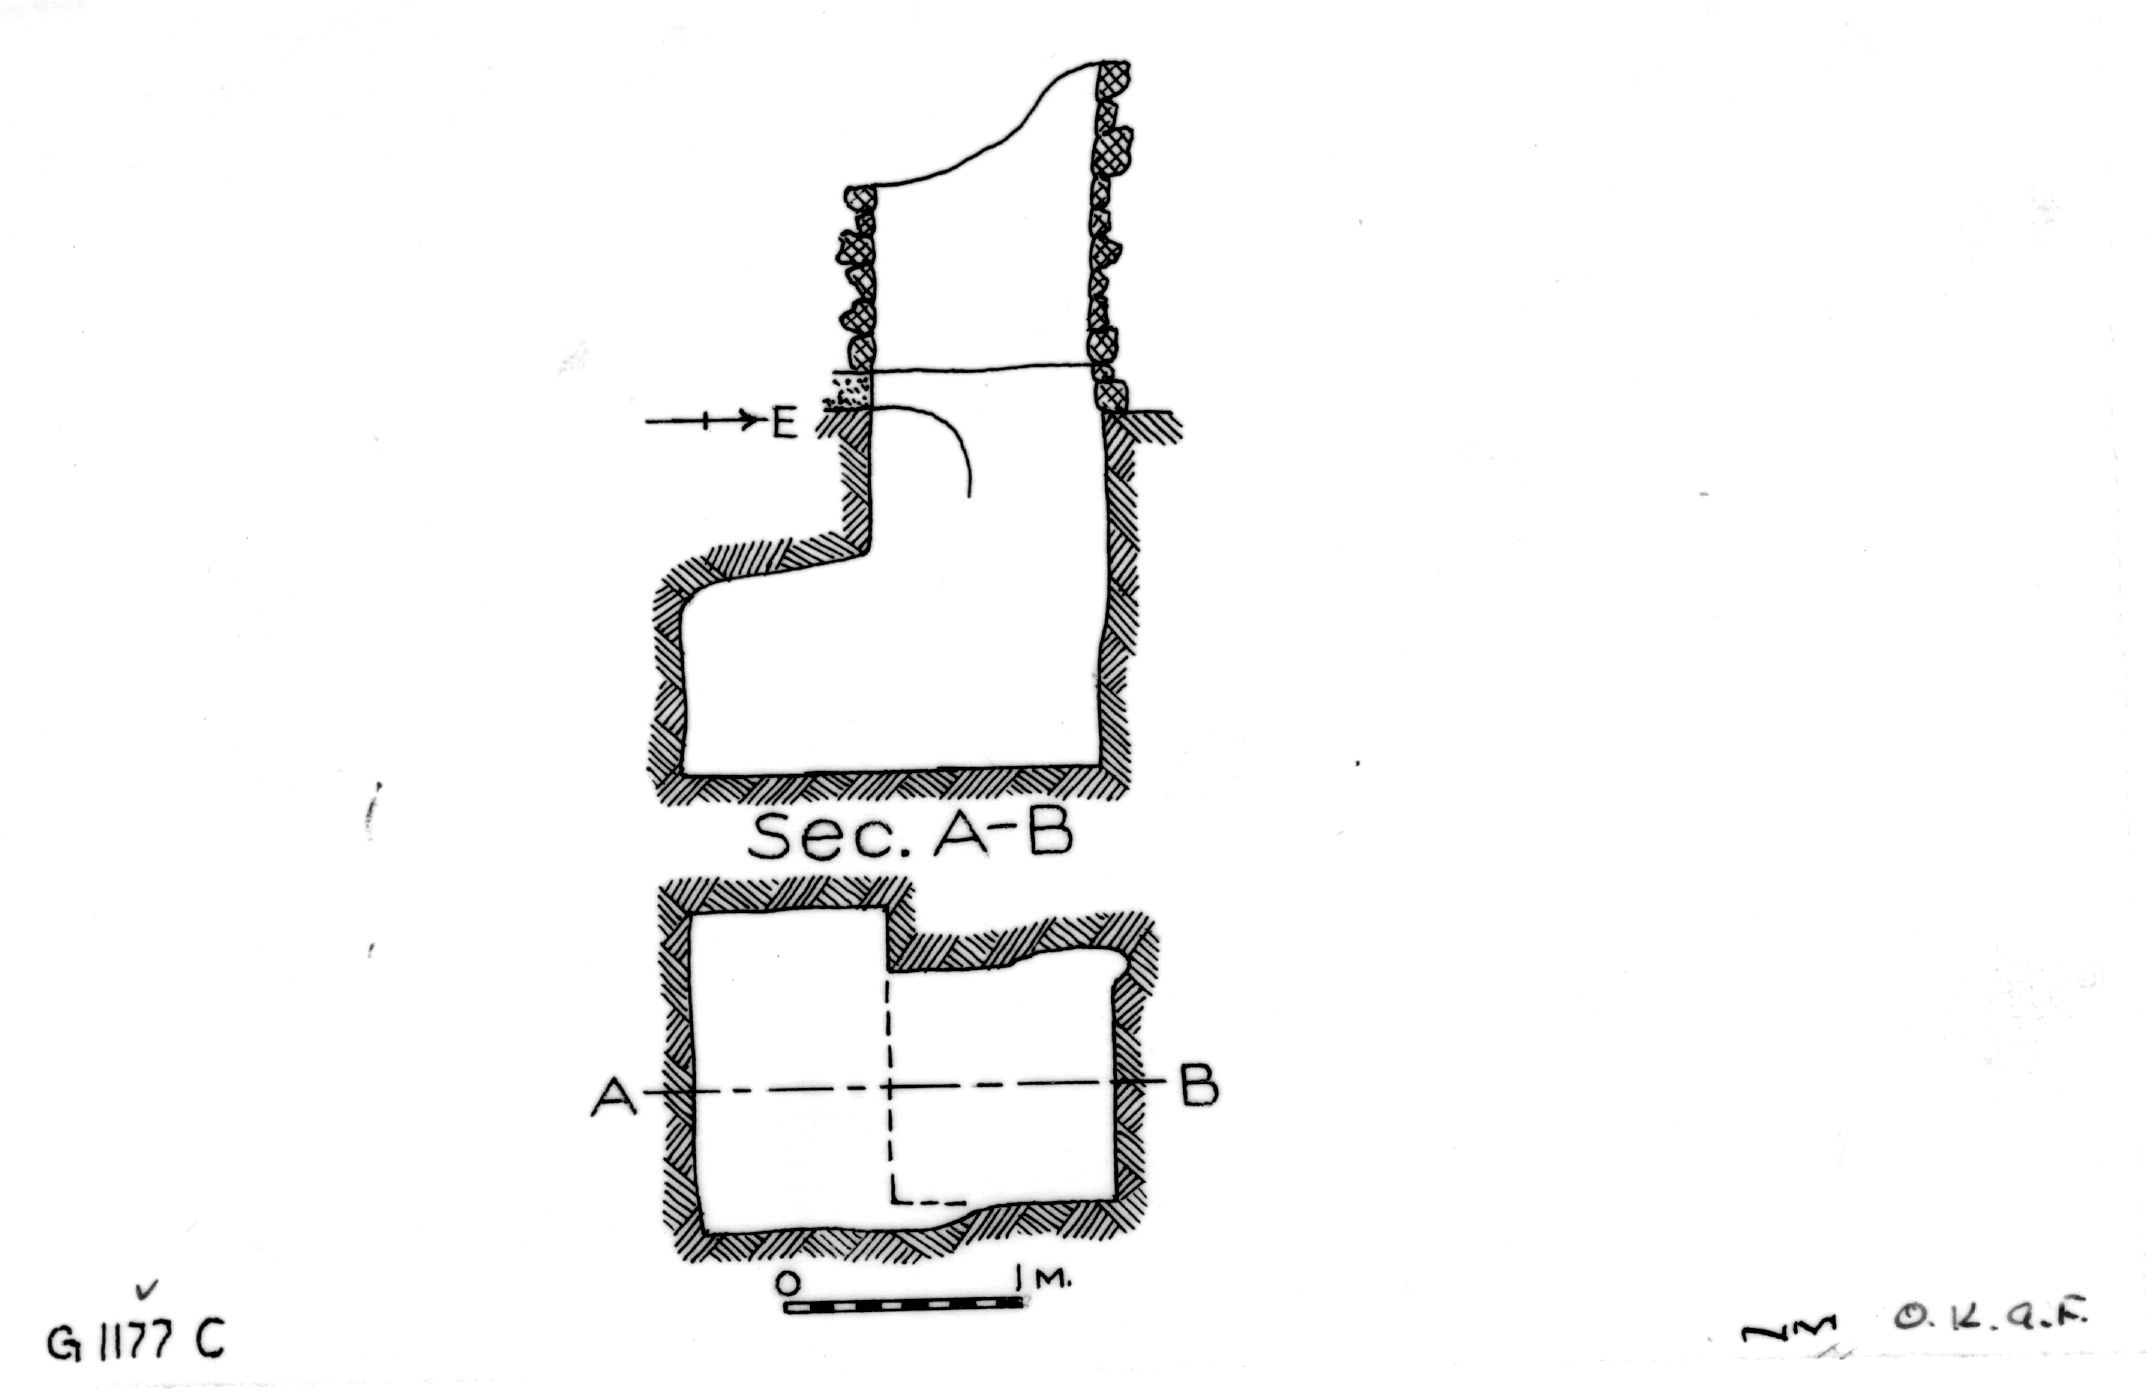 Maps and plans: G 1177, Shaft C